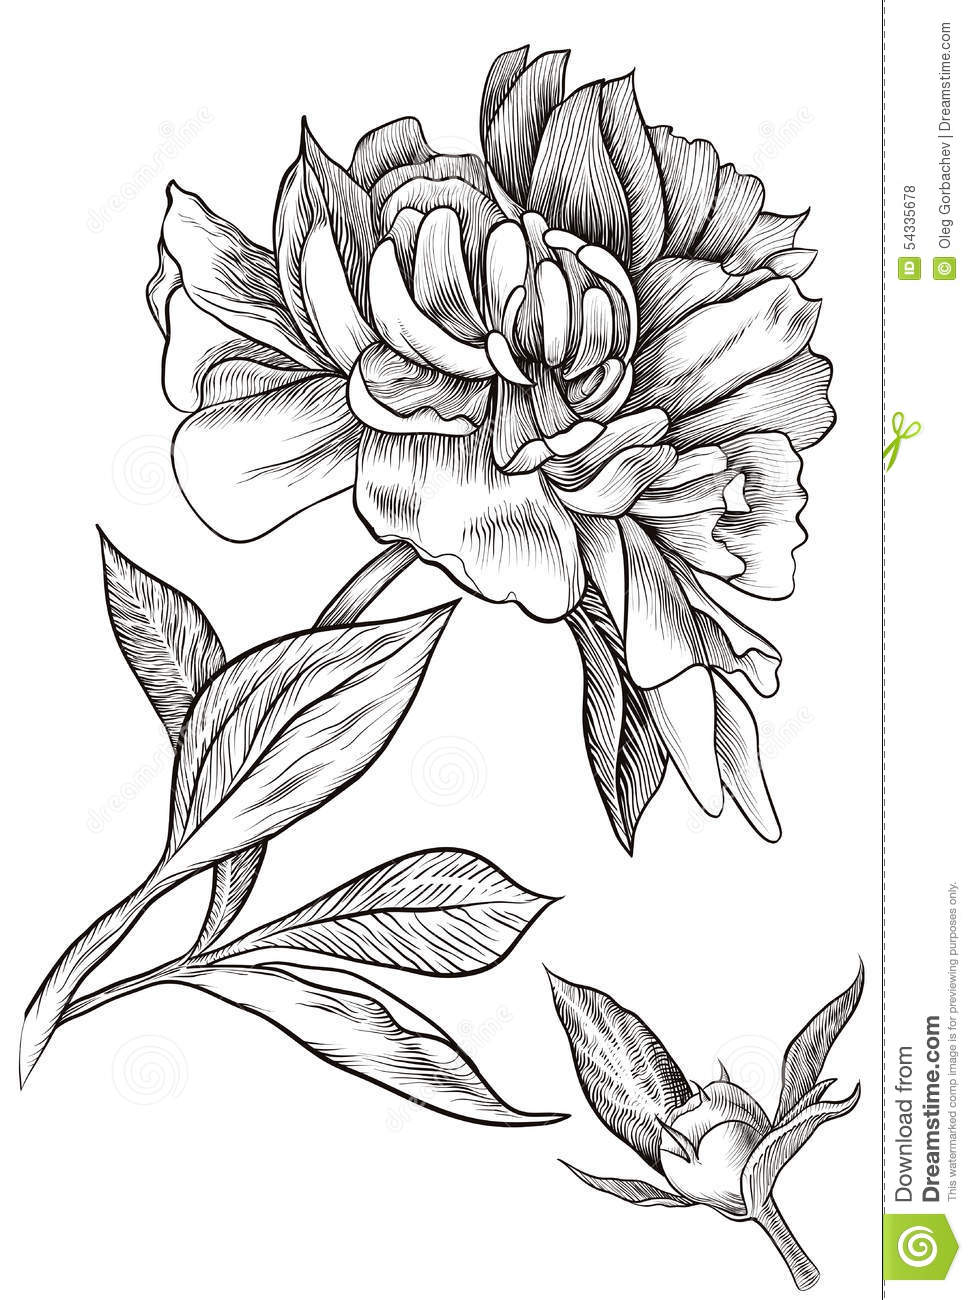 Vector Illustration  Design Element  Outline Drawing Of A Flower